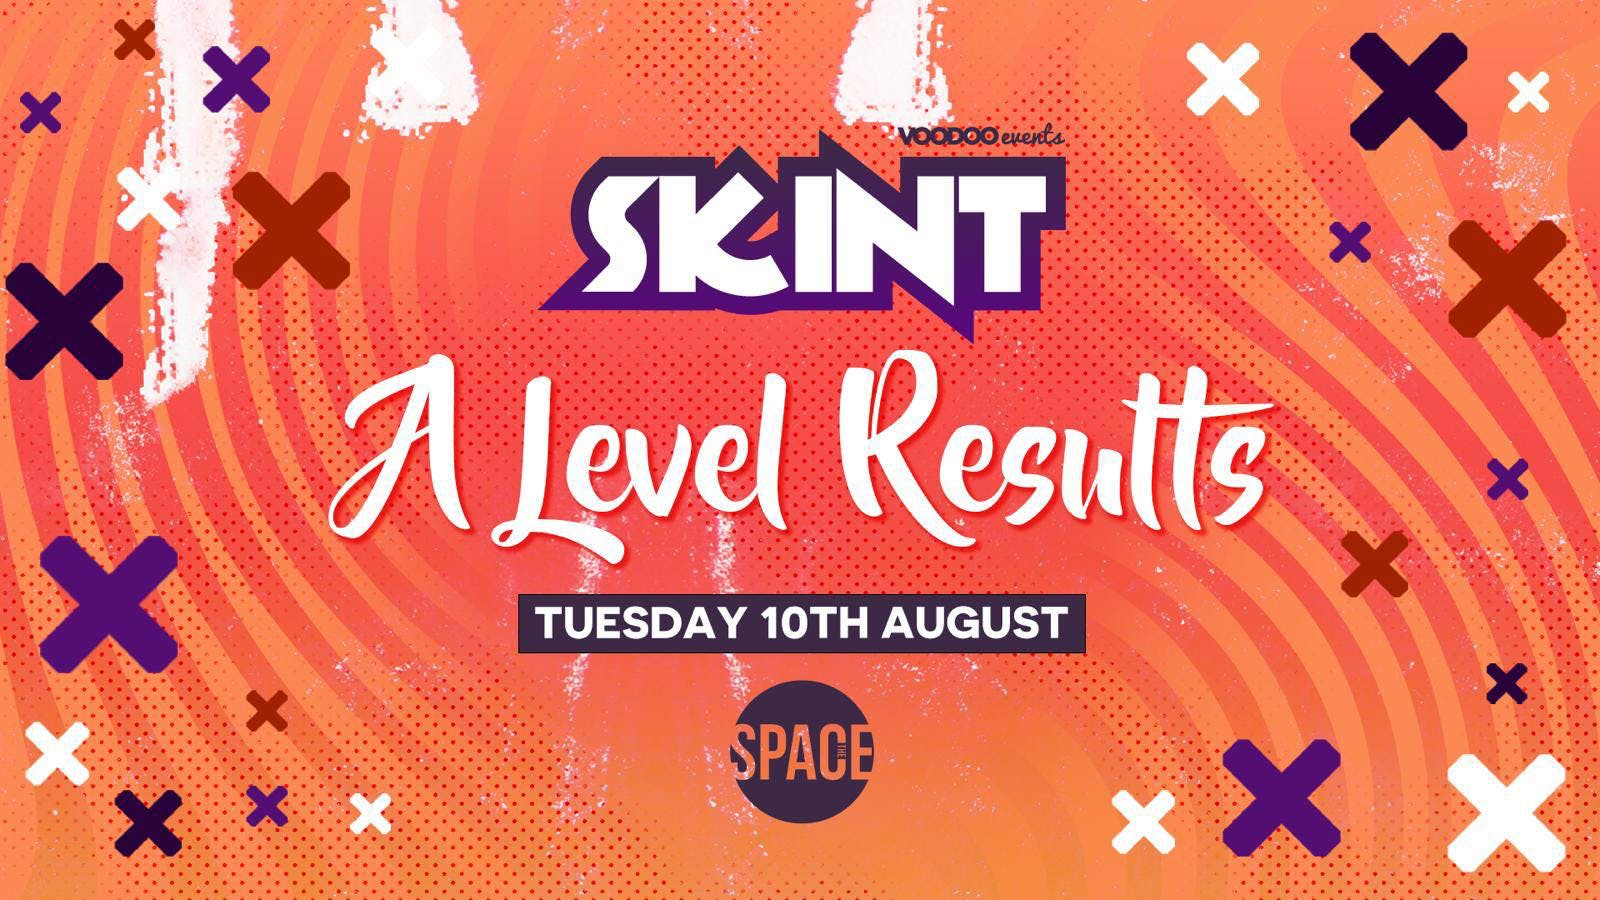 SKINT A Level Result Party 10.08.21